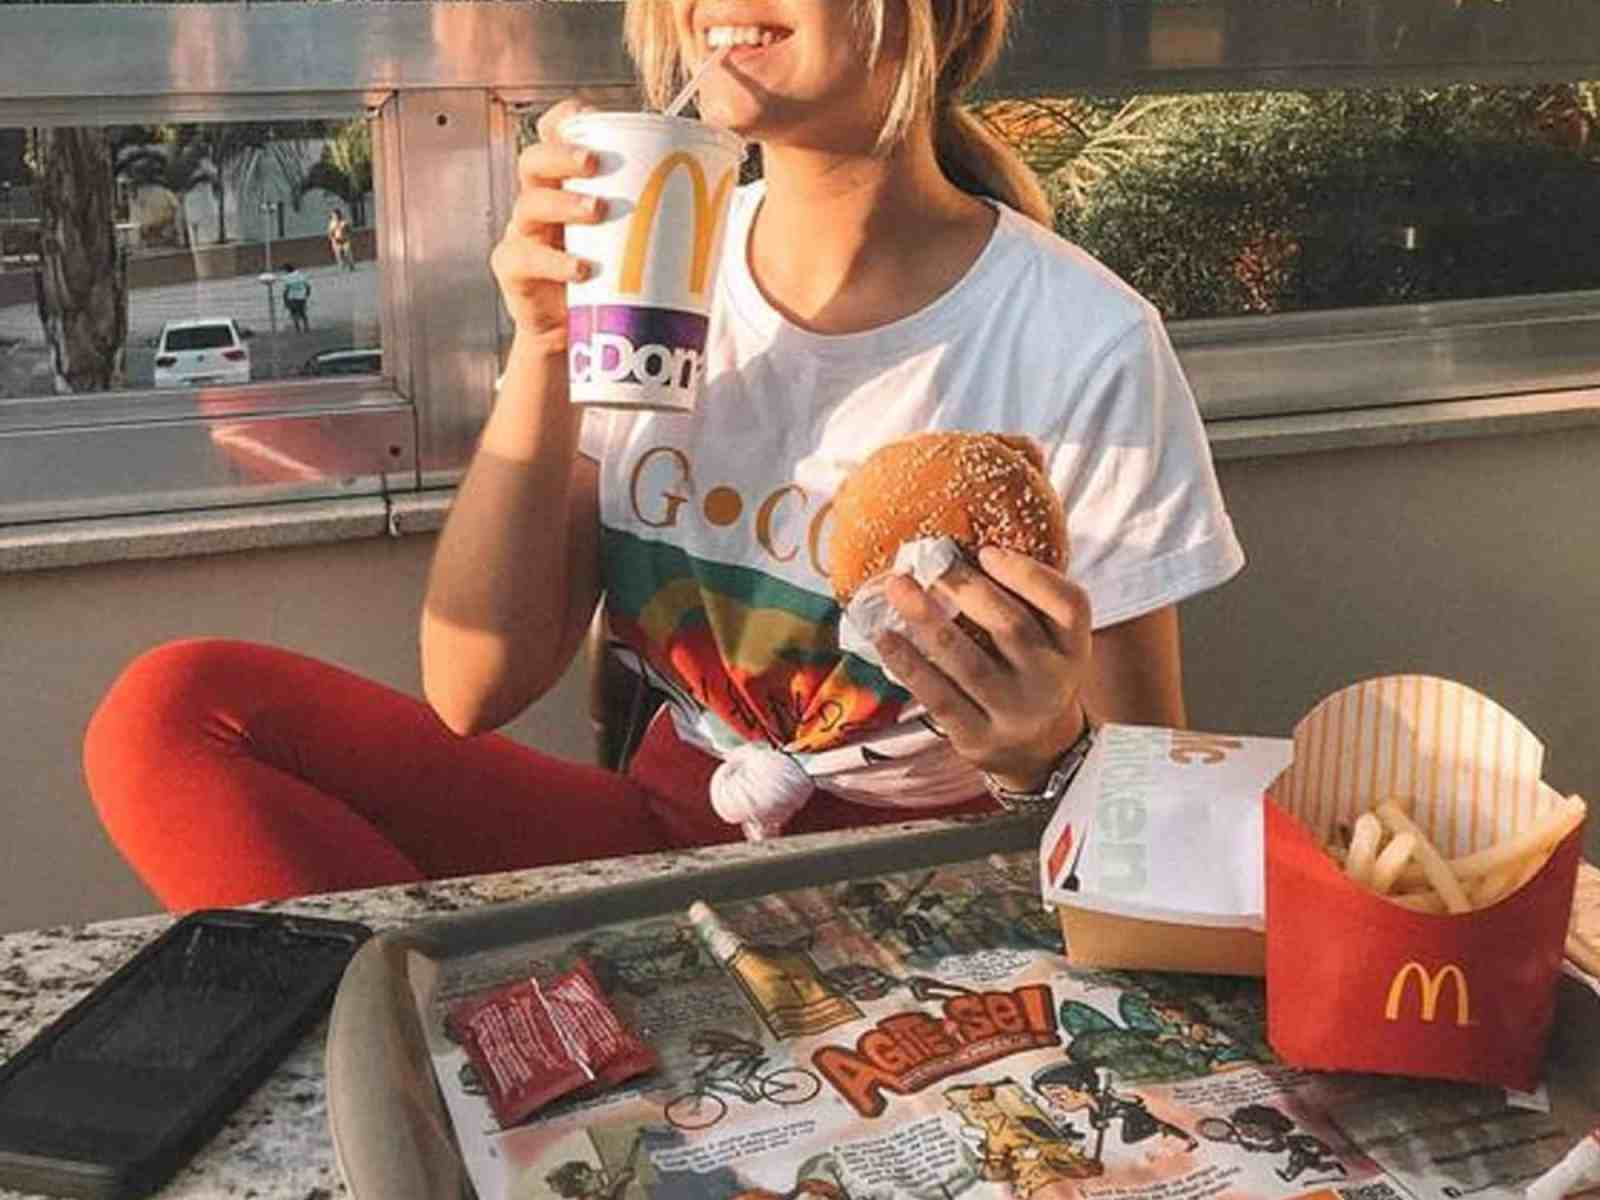 Here's a list of McDonald's least healthy foods based on calories and calories only. Save yourself a hefty lunch with this informative list!